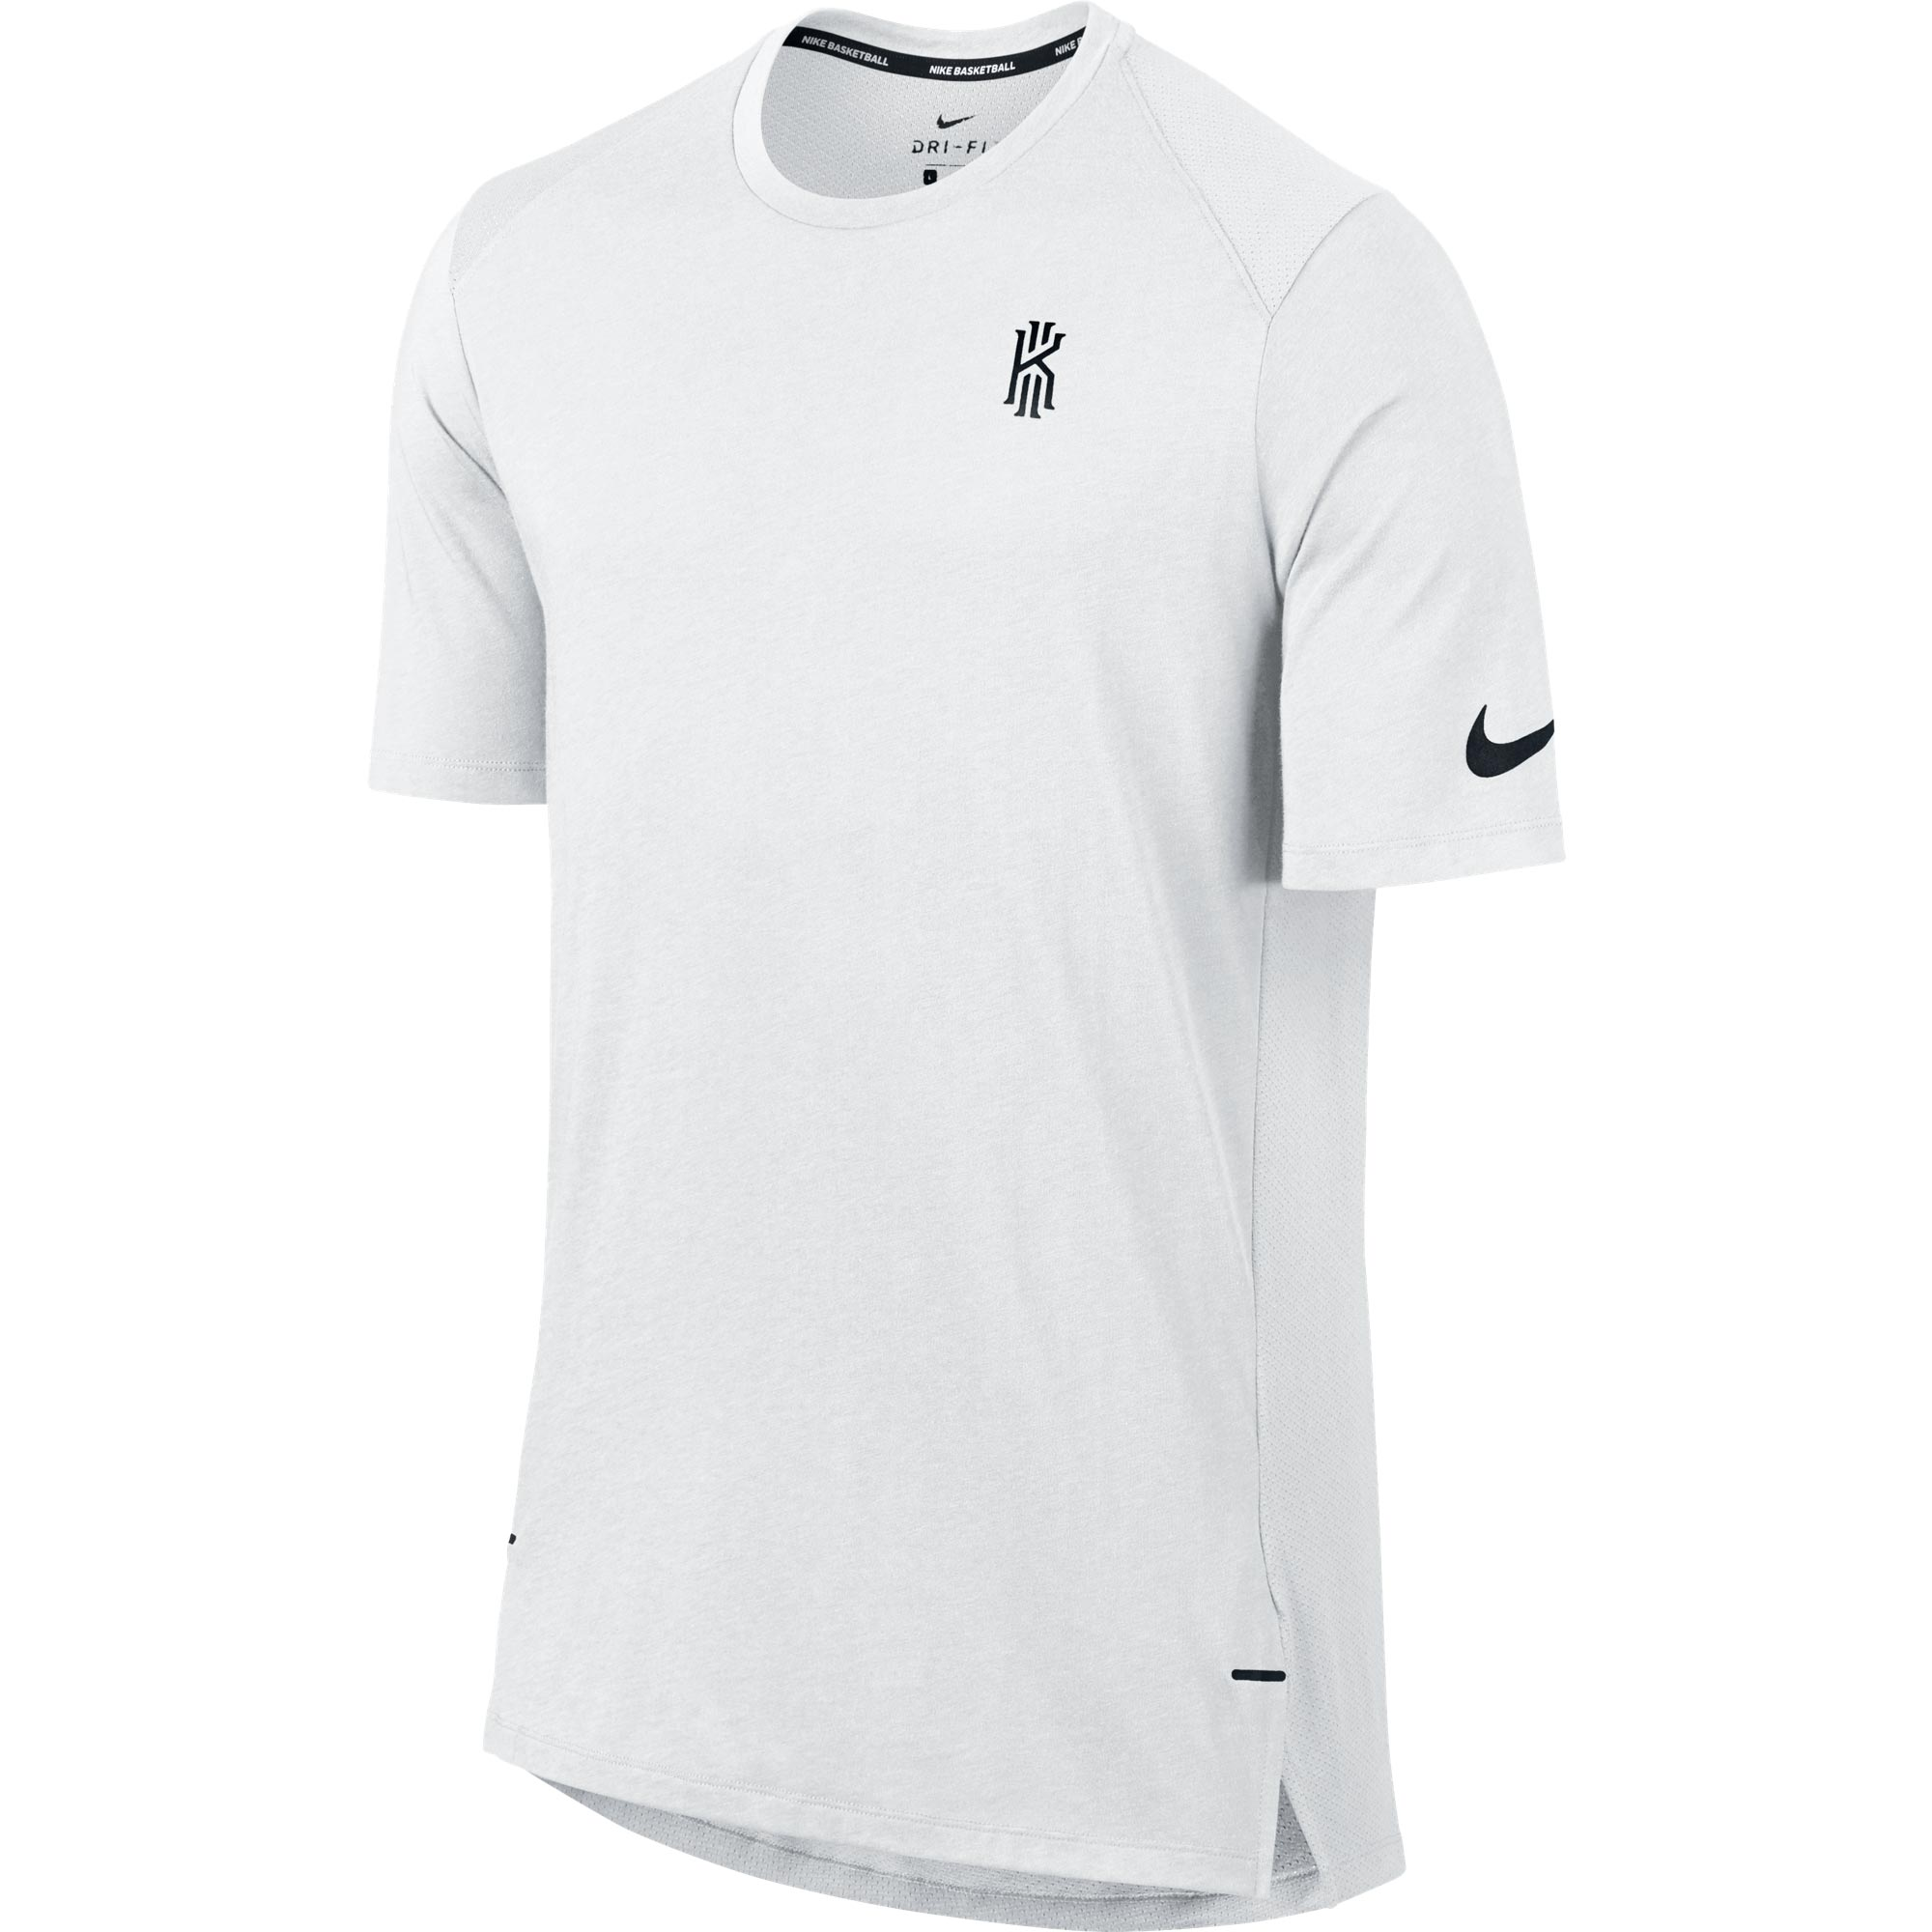 Nike Kyrie Dri-FIT T-Shirt - White/White - Mens